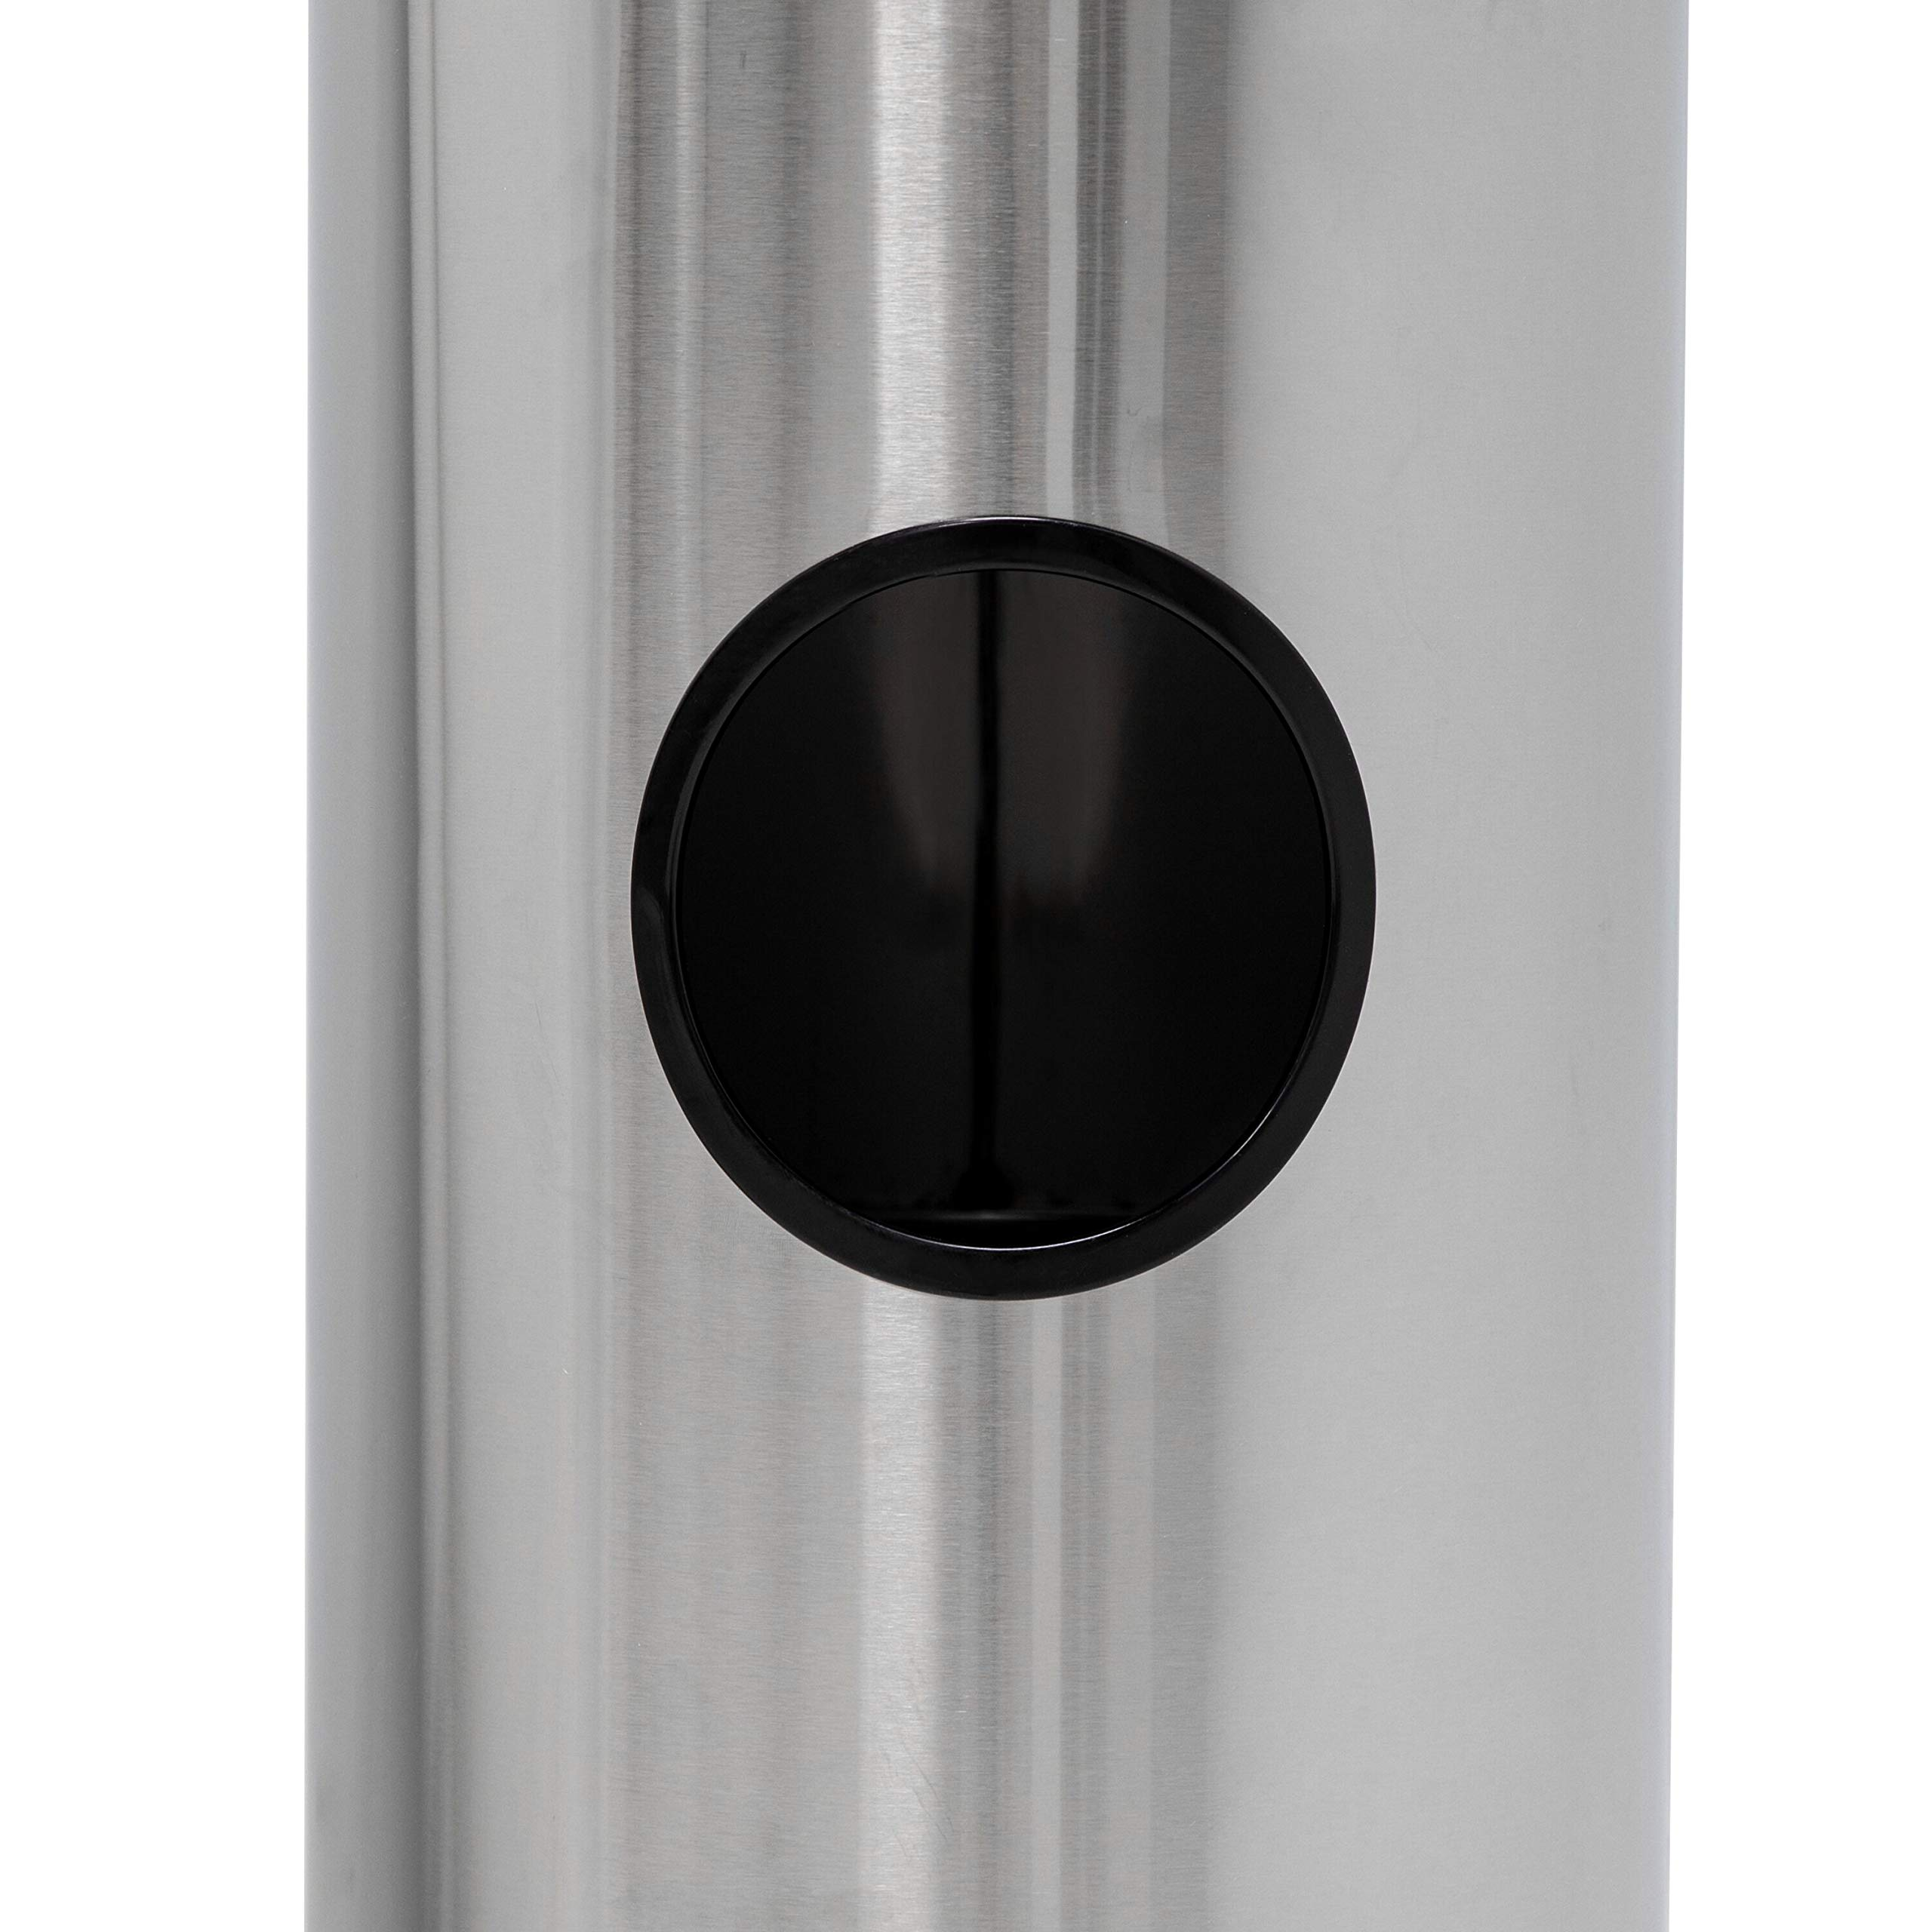 Germisept Stainless Steel Wipes Dispenser with High Capacity Built-in Trash Can and Back Door Access, with Sign Board by GERMISEPT (Image #4)